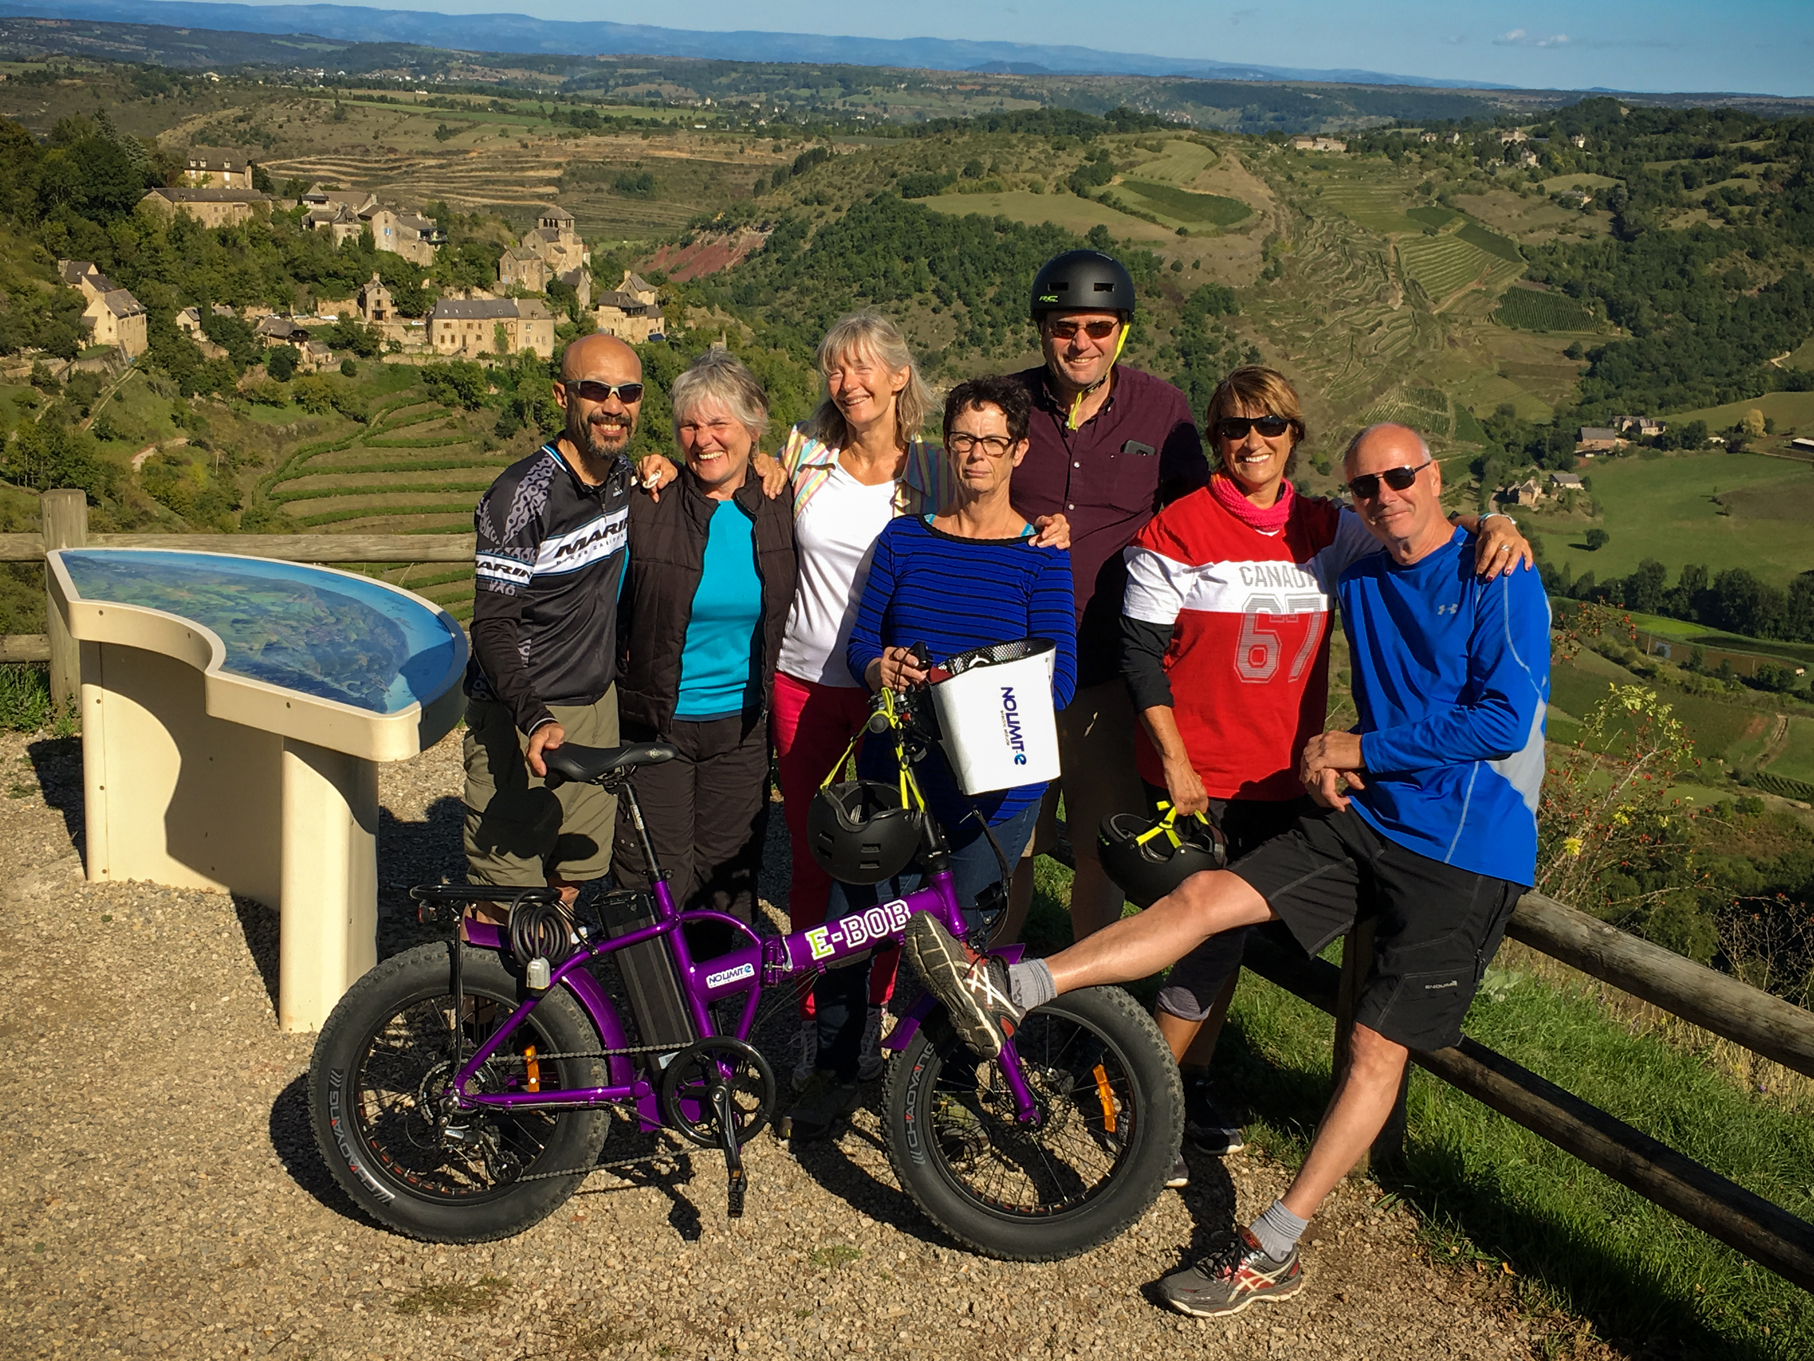 From left to right, Jack, Nadine, Véronique, Laura, Dan, Debbie and Ernie during their biking day in Aveyron in front of Cassagnes-Comtaux and the Marcillac vineyards.